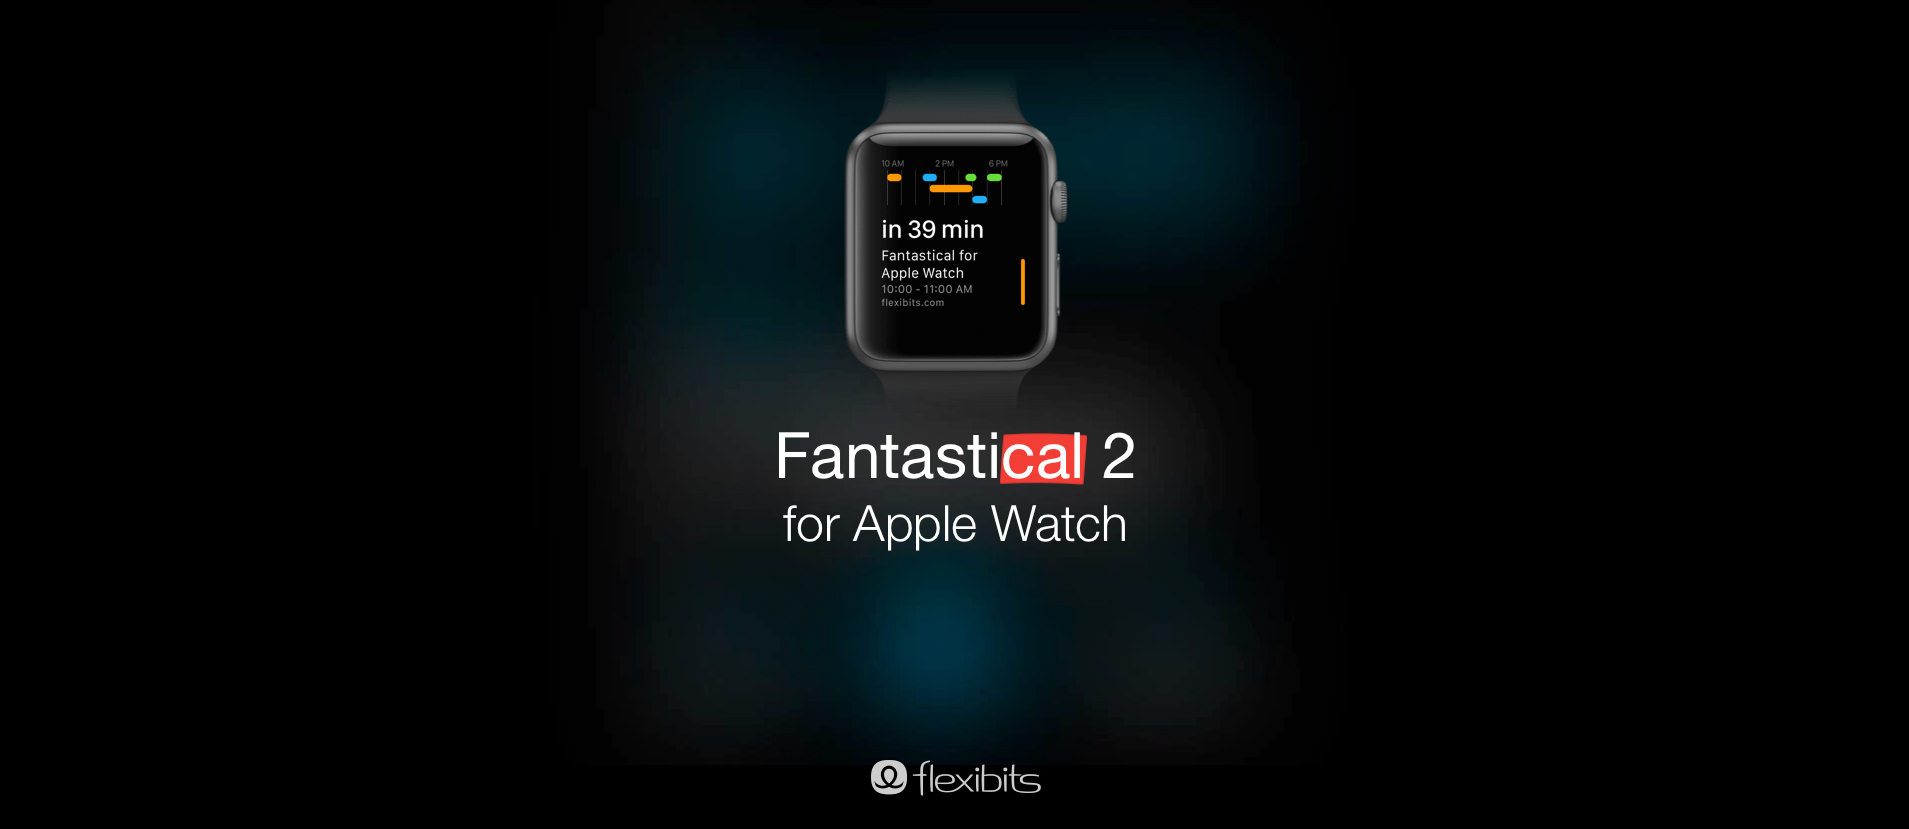 Flexibits teases an Apple Watch version of its Fantastical 2 calendar app